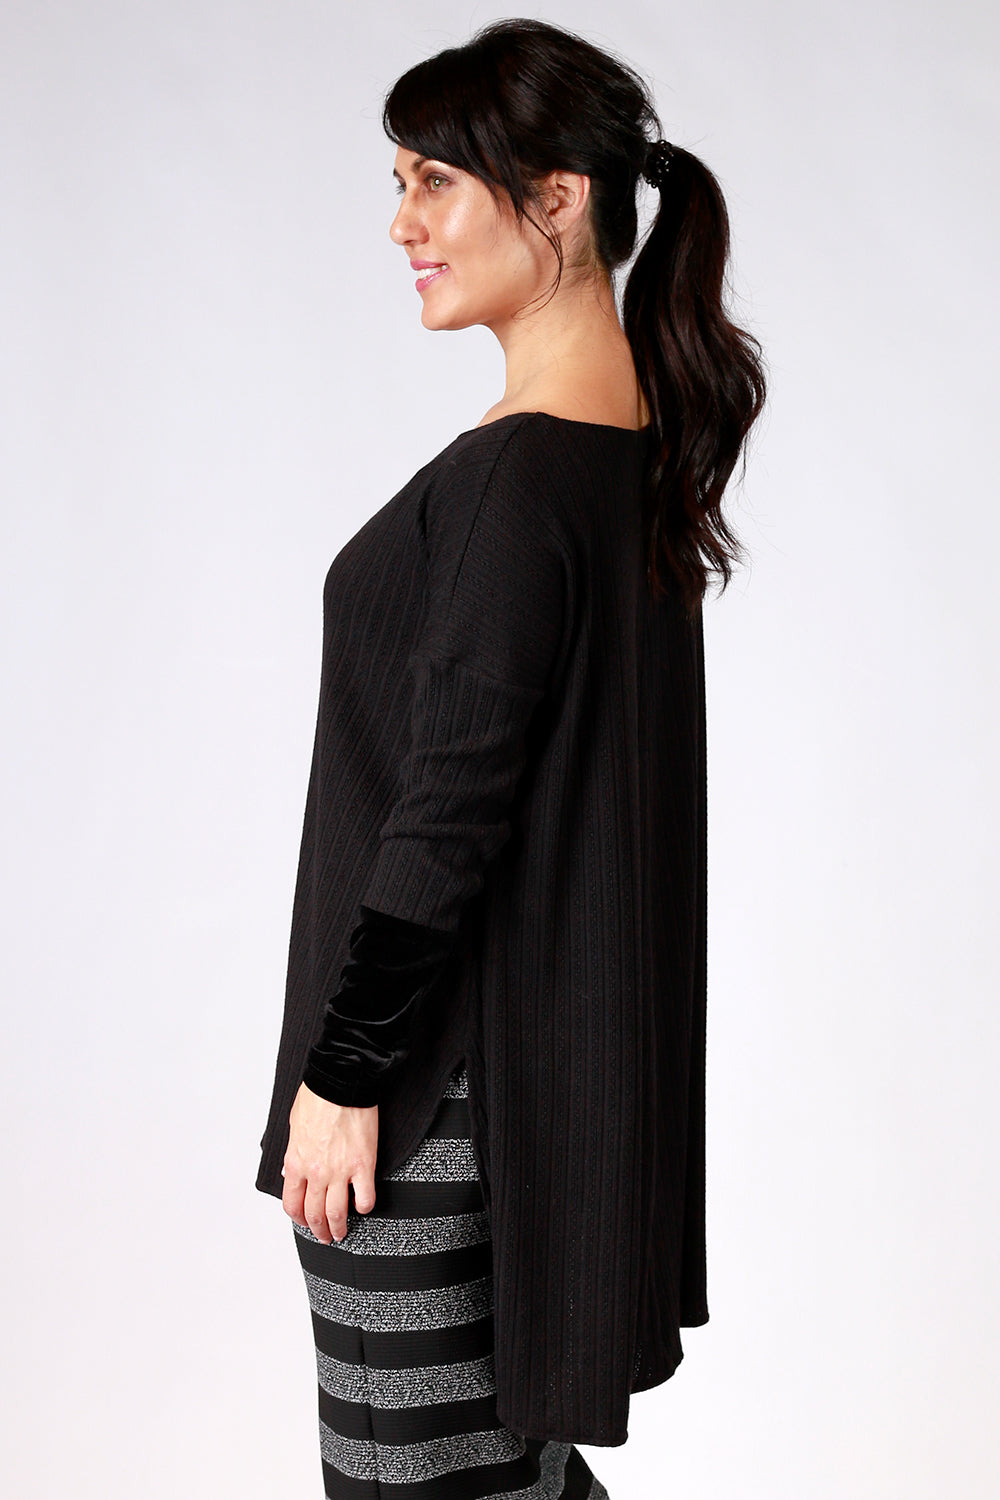 Naturally Nessie Top | Gypsy Fare AW20 | Annah Stretton | Annah Stretton Fashion | Designer Fashion | Knit Top | Black Top | Long sleeve Top | Velvet Top | Annah Stretton NZ | Designer Fashion NZ